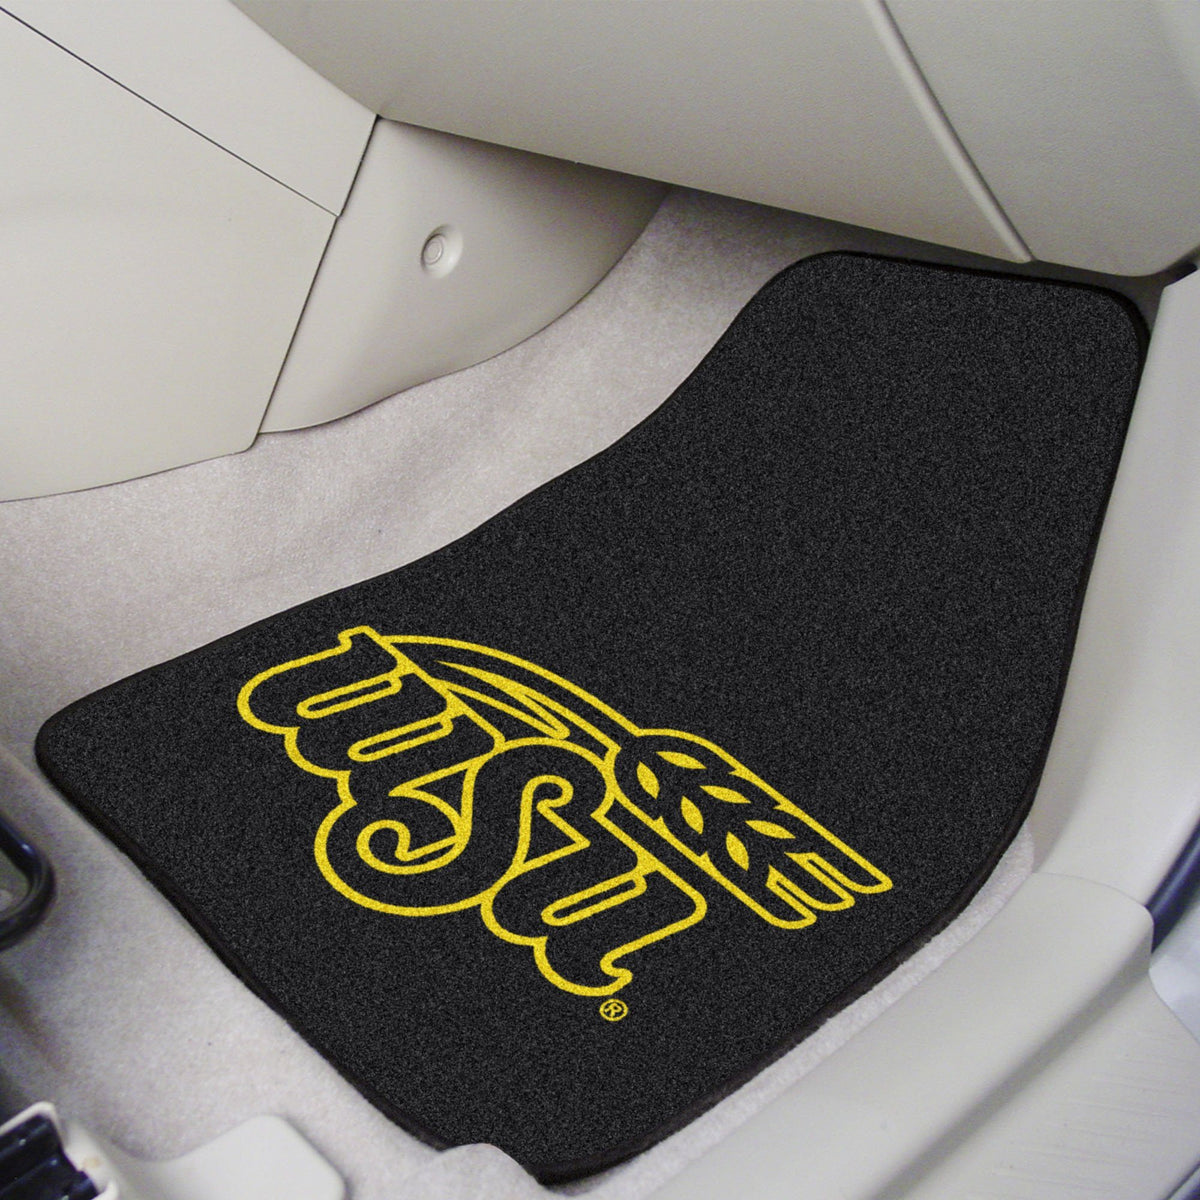 Collegiate - Carpet Car Mat, 2-Piece Set: T - Z Collegiate Car Mat, Front Car Mats, 2-pc Carpet Car Mat Set, Collegiate, Auto Fan Mats Wichita State